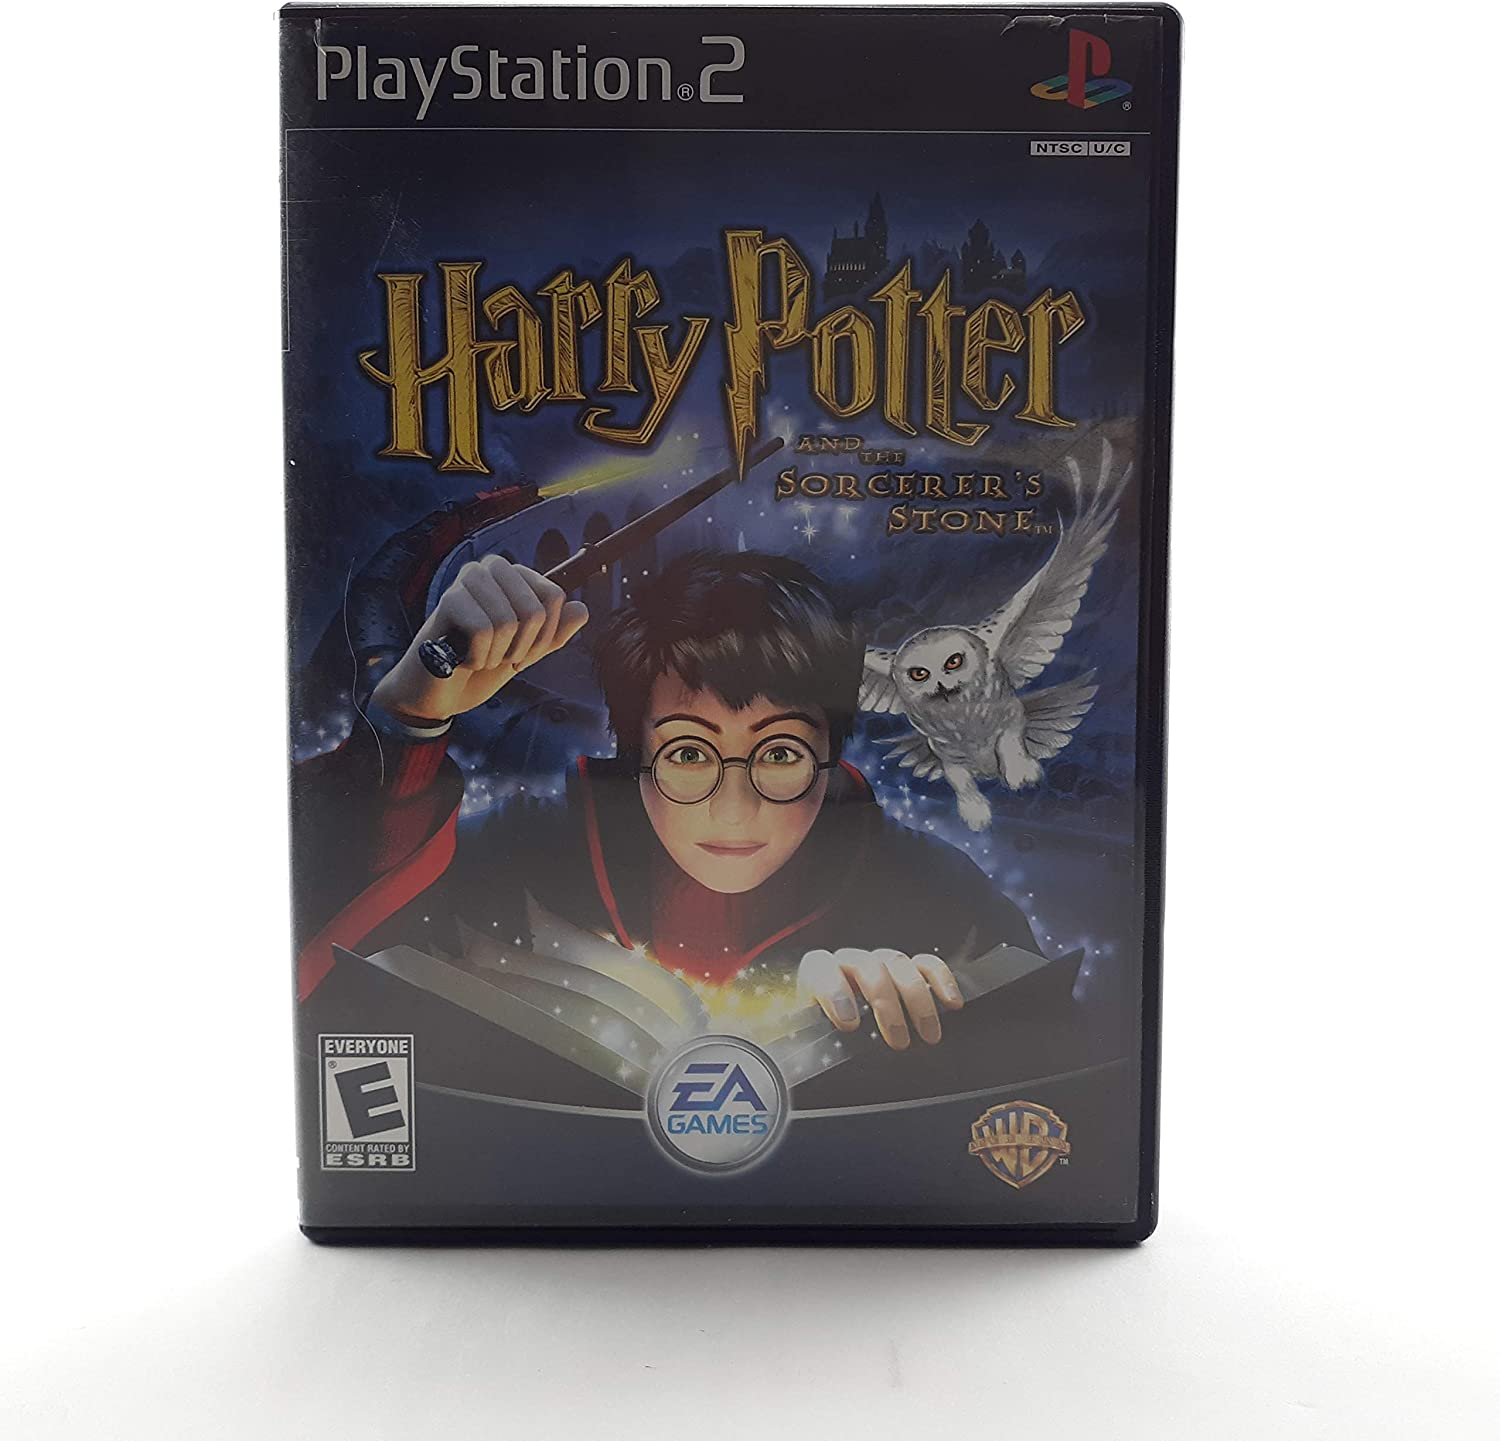 Image of Games Harry Potter and the Sorcerer's Stone - PlayStation 2